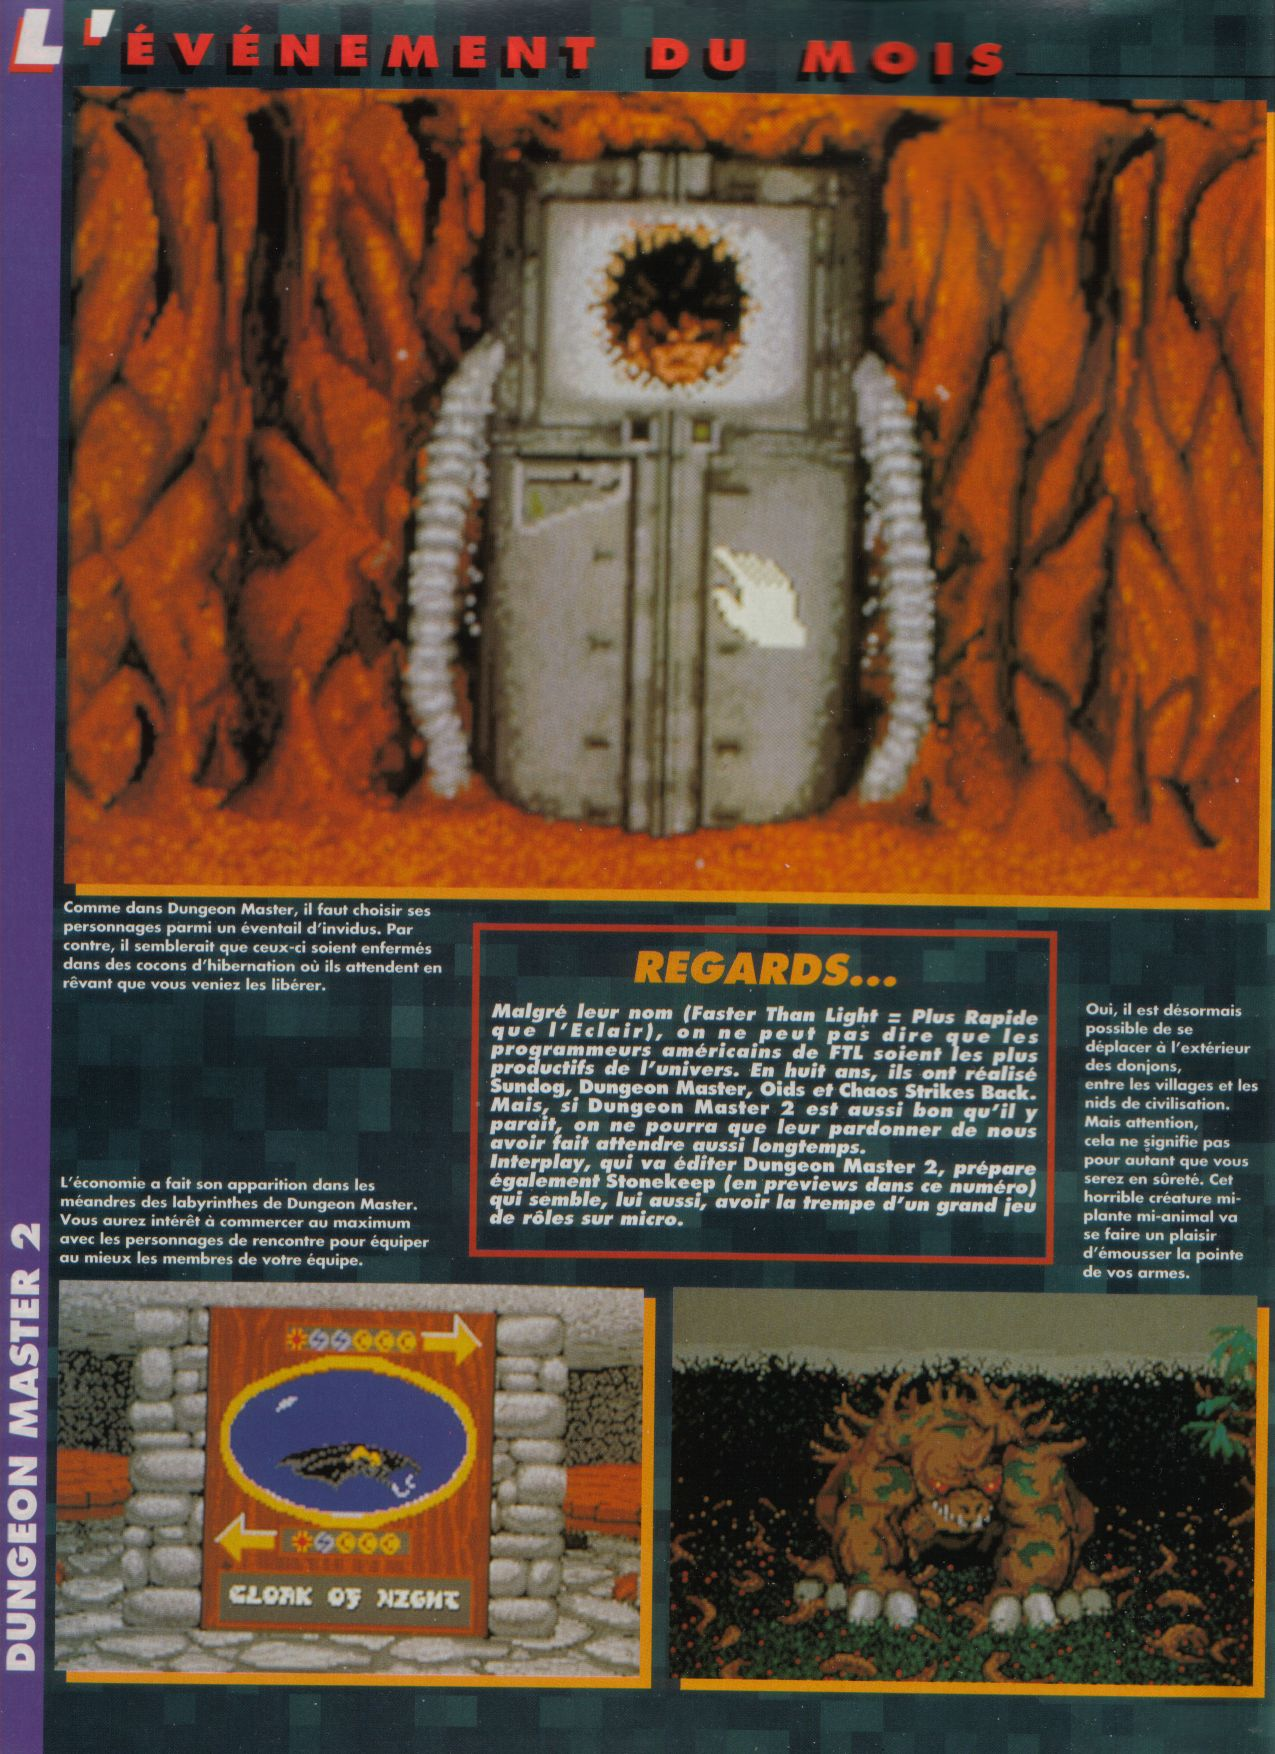 Dungeon Master II for PC / Amiga / Atari ST Preview published in French magazine 'Tilt', Issue #117, September 1993, Page 16